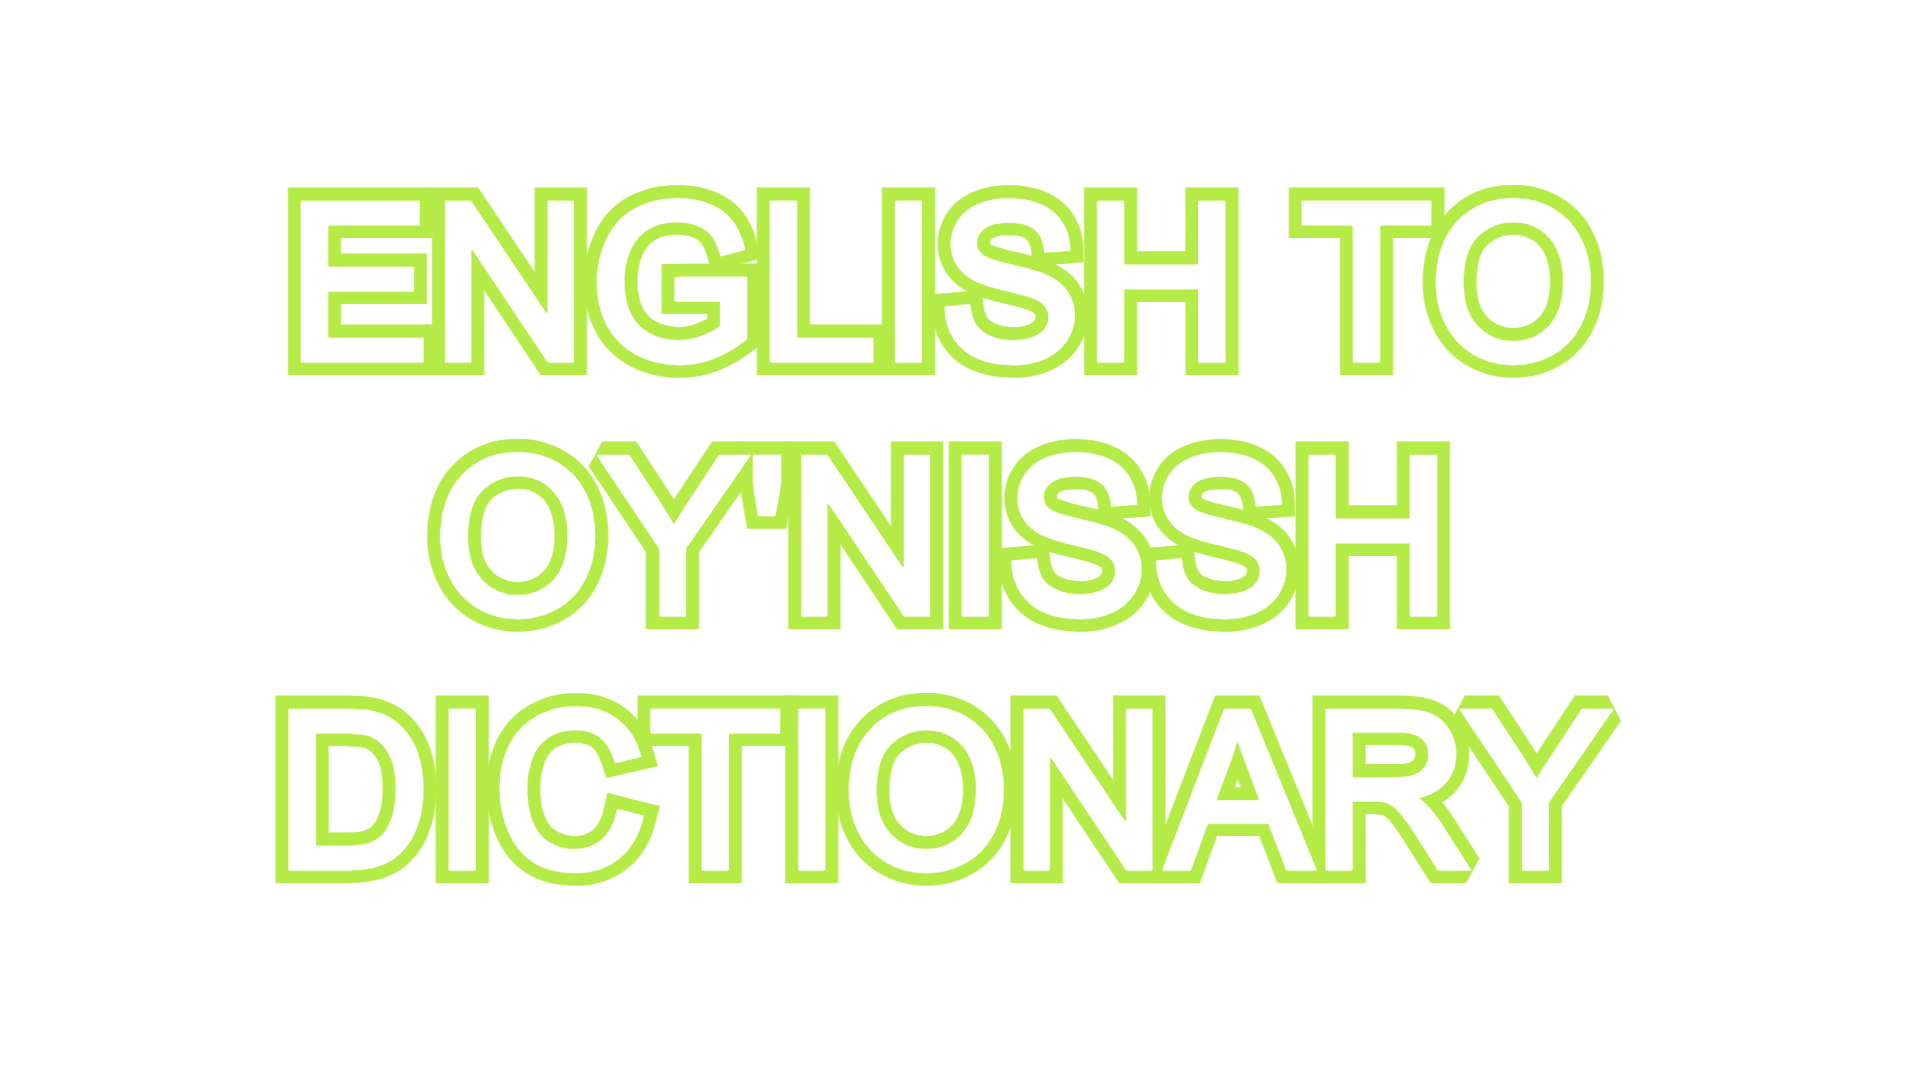 English to Oy'Nissh Dictionary